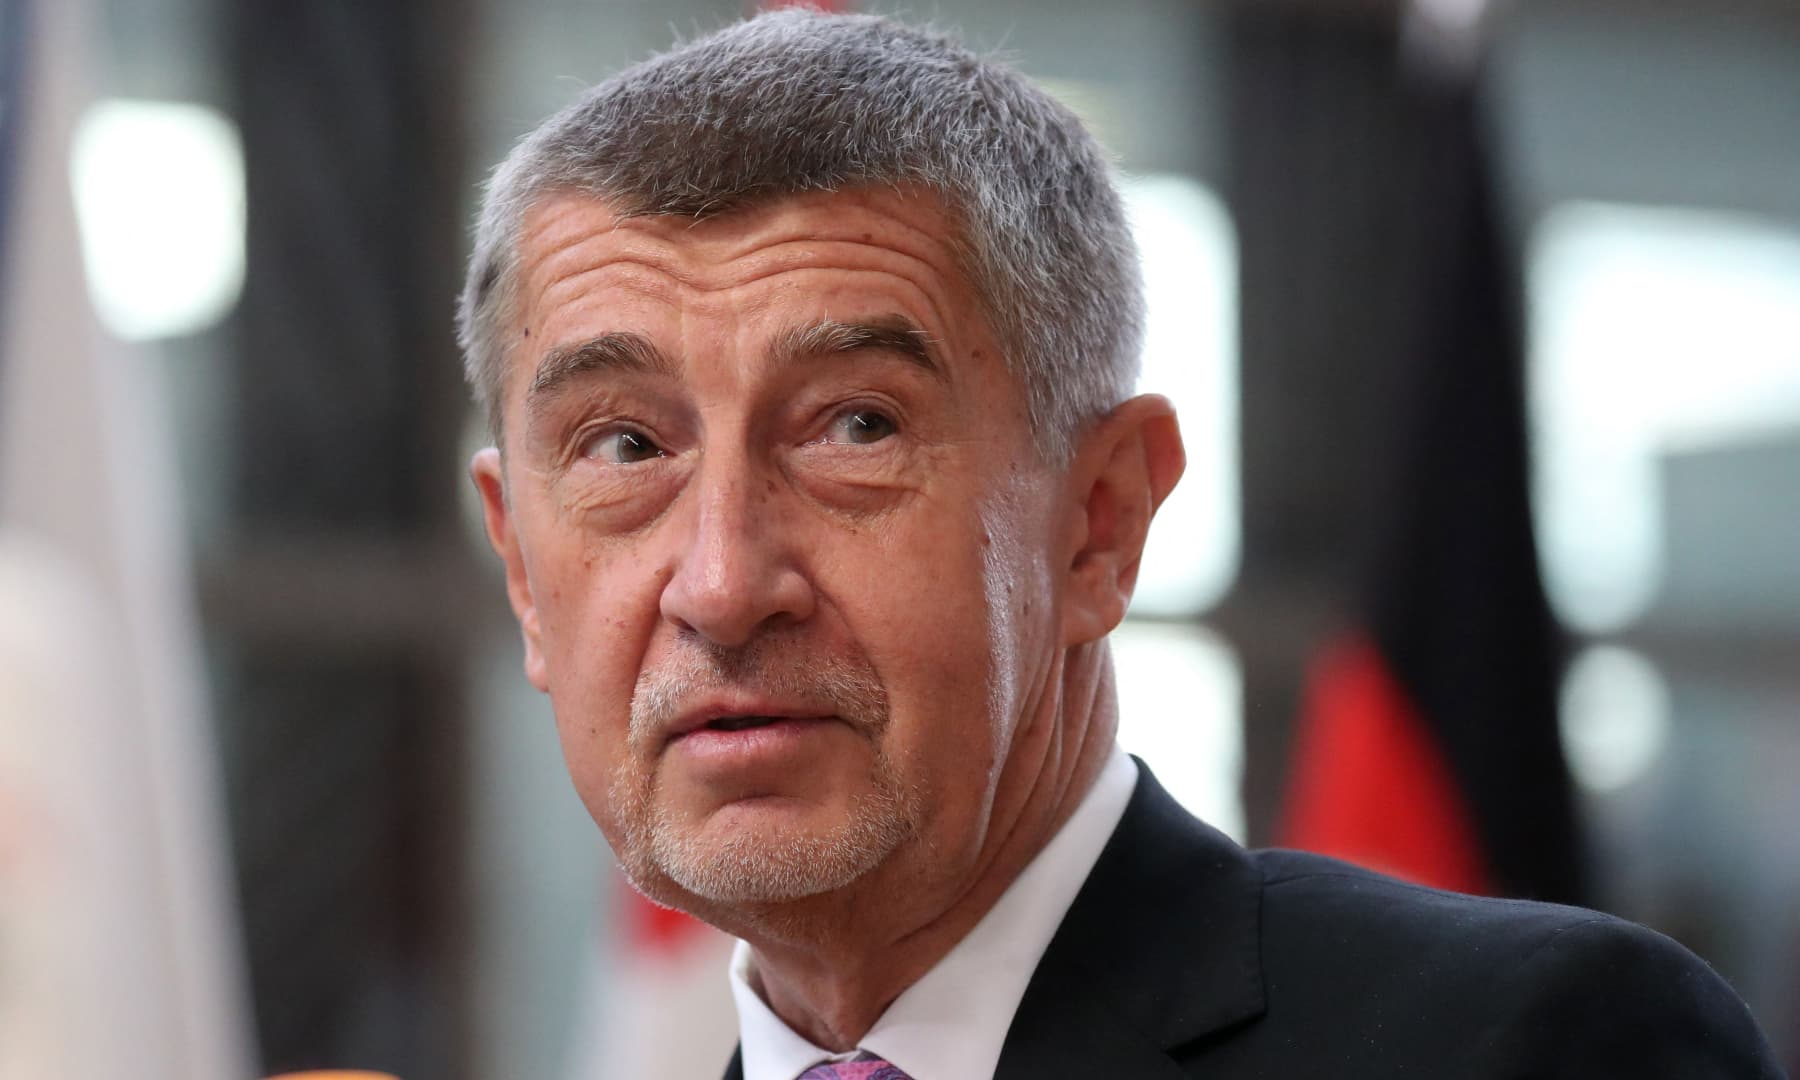 Czech Republic's Prime Minister Andrej Babis addresses media representatives as he arrives for the second day of a special European Council summit in Brussels, Belgium on February 21, 2020. — AFP/File